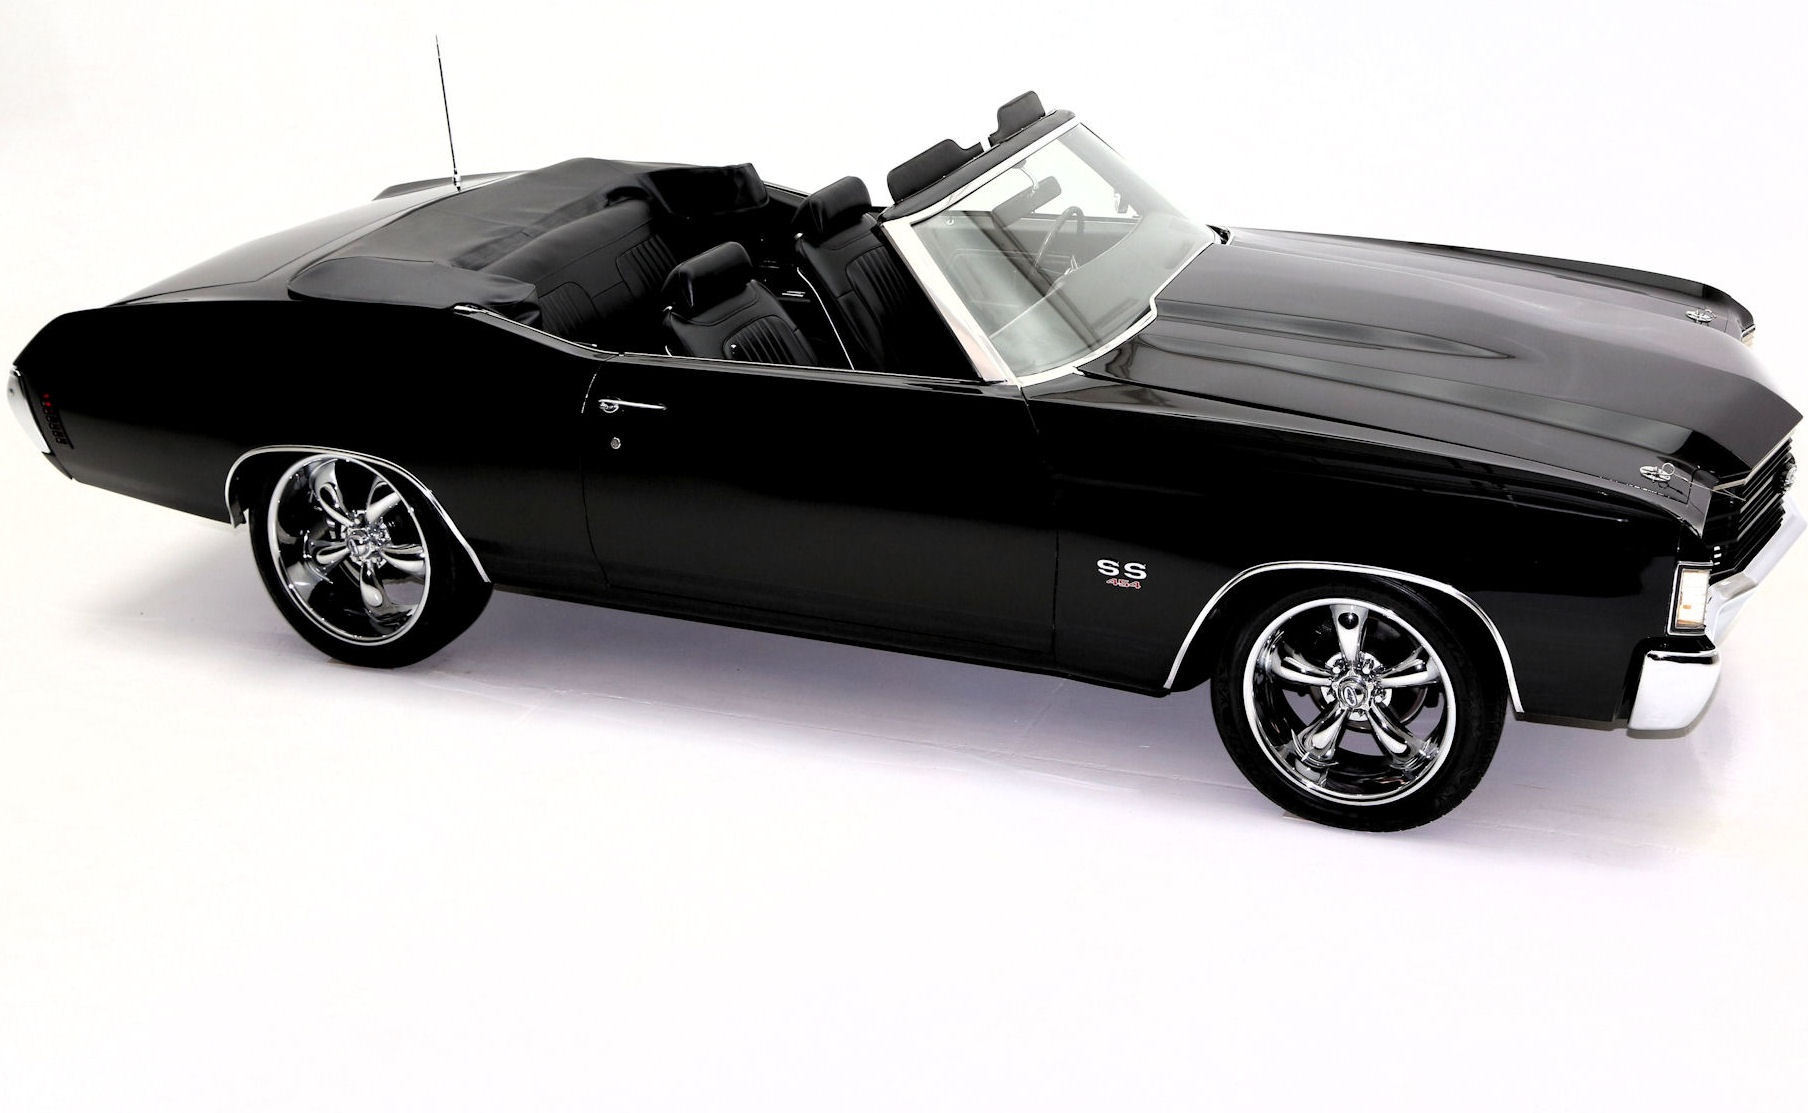 Chevrolet Chevelle Convertible Black Speed American